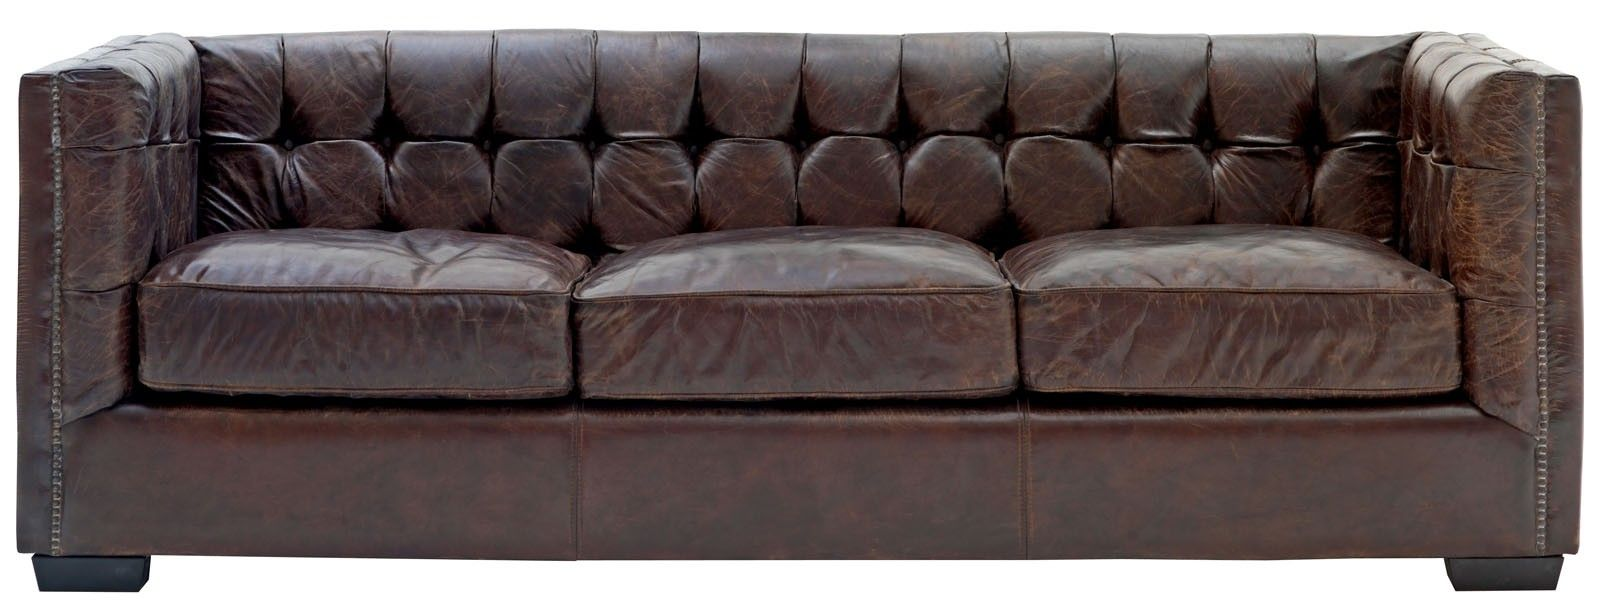 Chesterfield Sofa Armstrong Sofa Leather